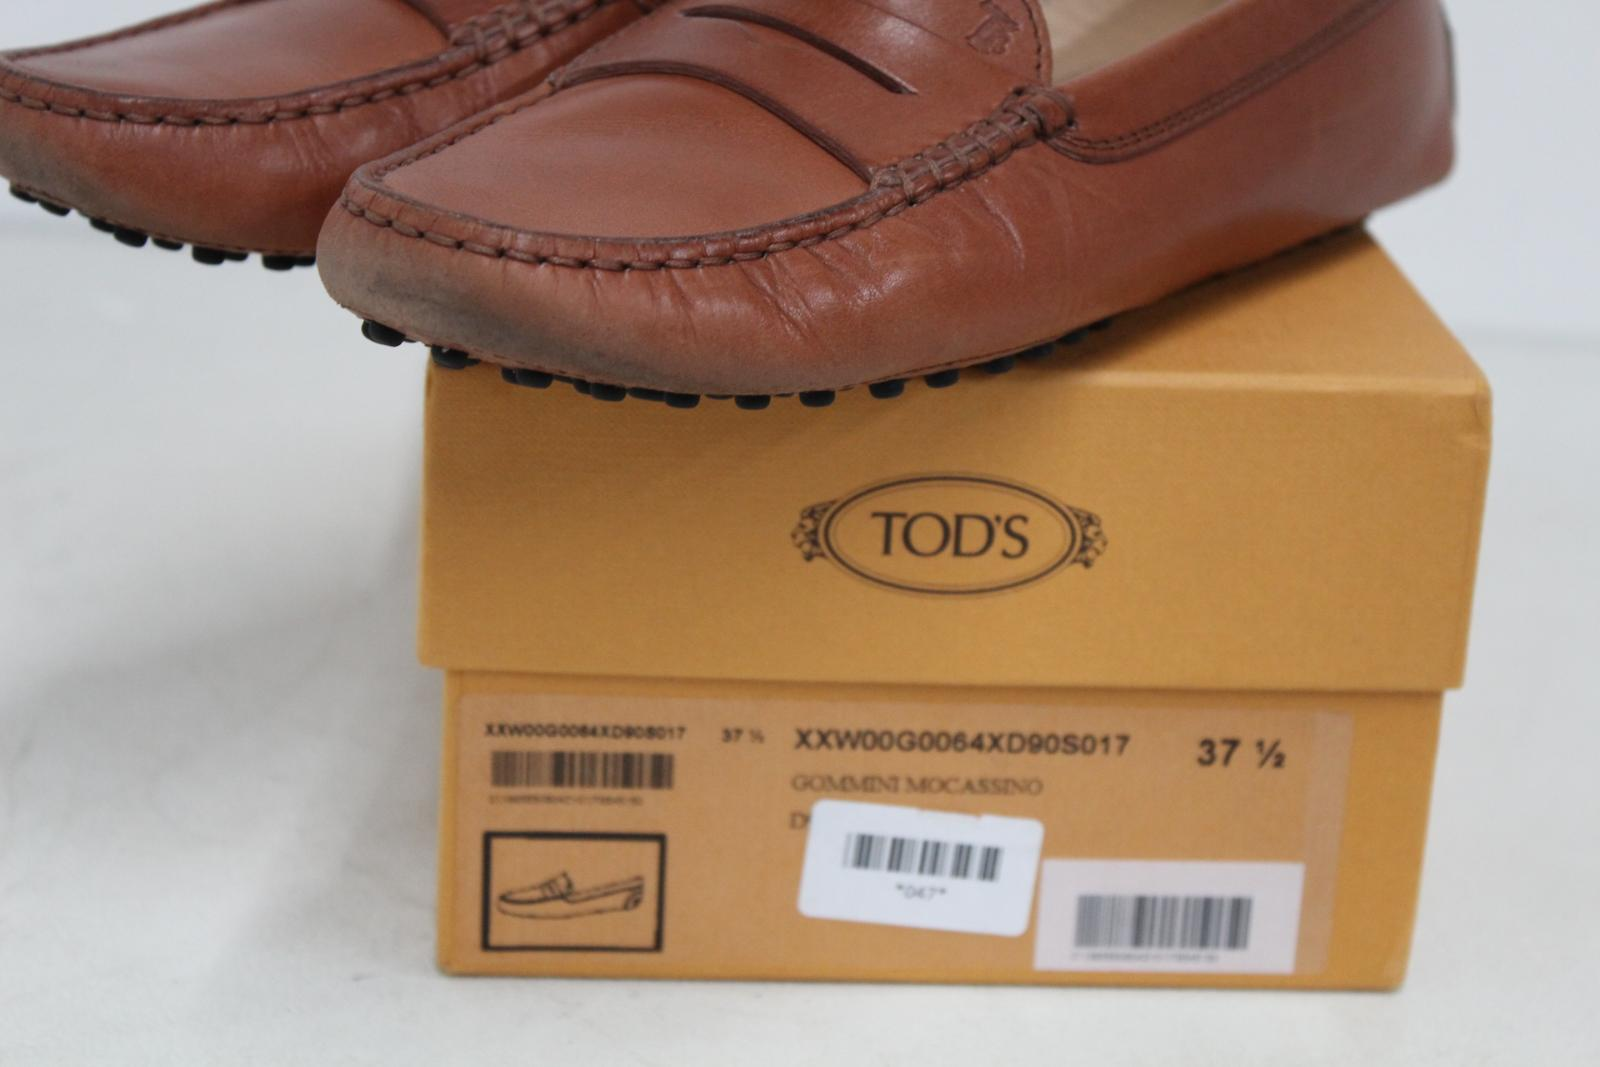 TODS-Ladies-Light-Brown-Flat-Shoes-Gommini-Mocassino-Loafers-UK-5-EU37-5 thumbnail 11